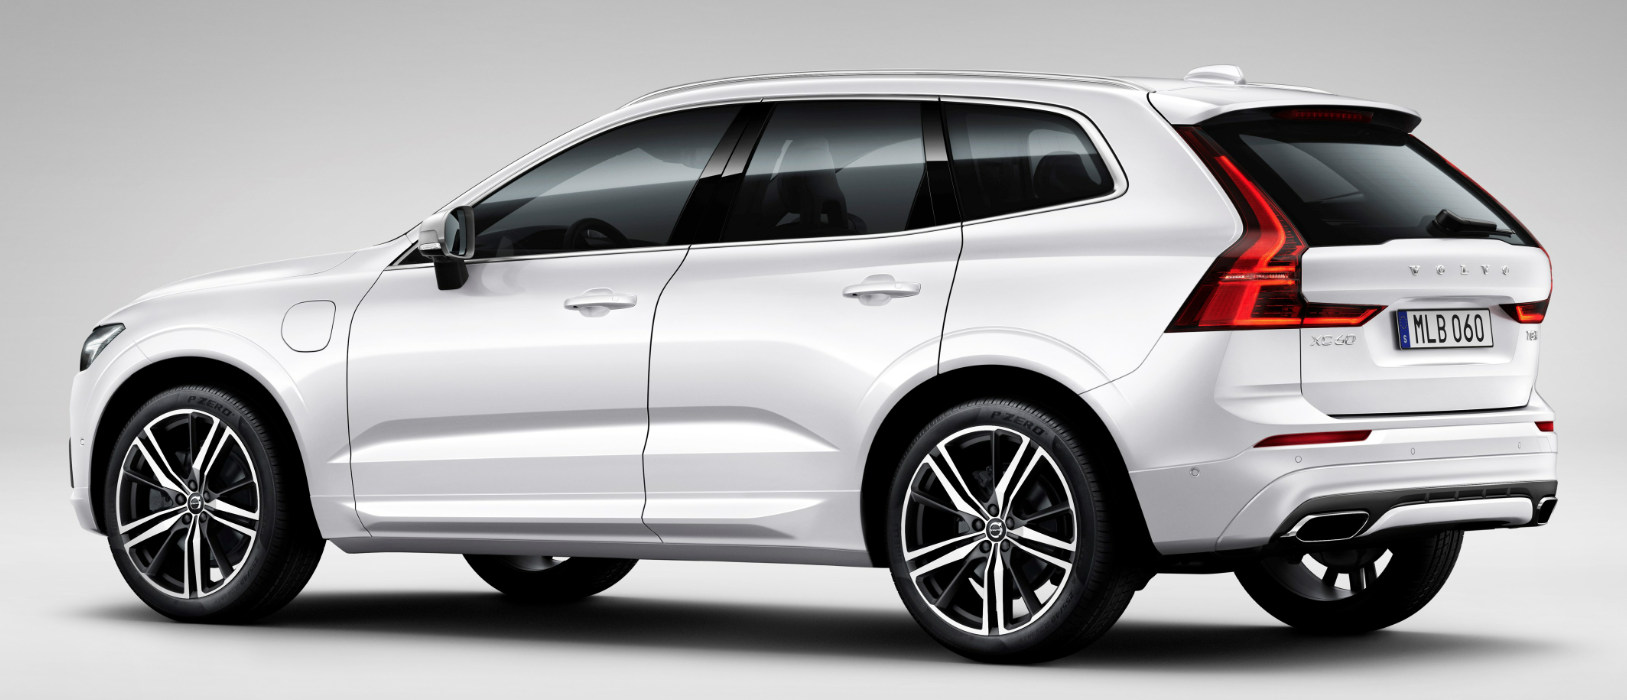 2018 Volvo Xc60 Side Sculpturing Is Much More Prominent On The Redesigned Which Grows A Bit In Overall Length And Quite Wheelbase